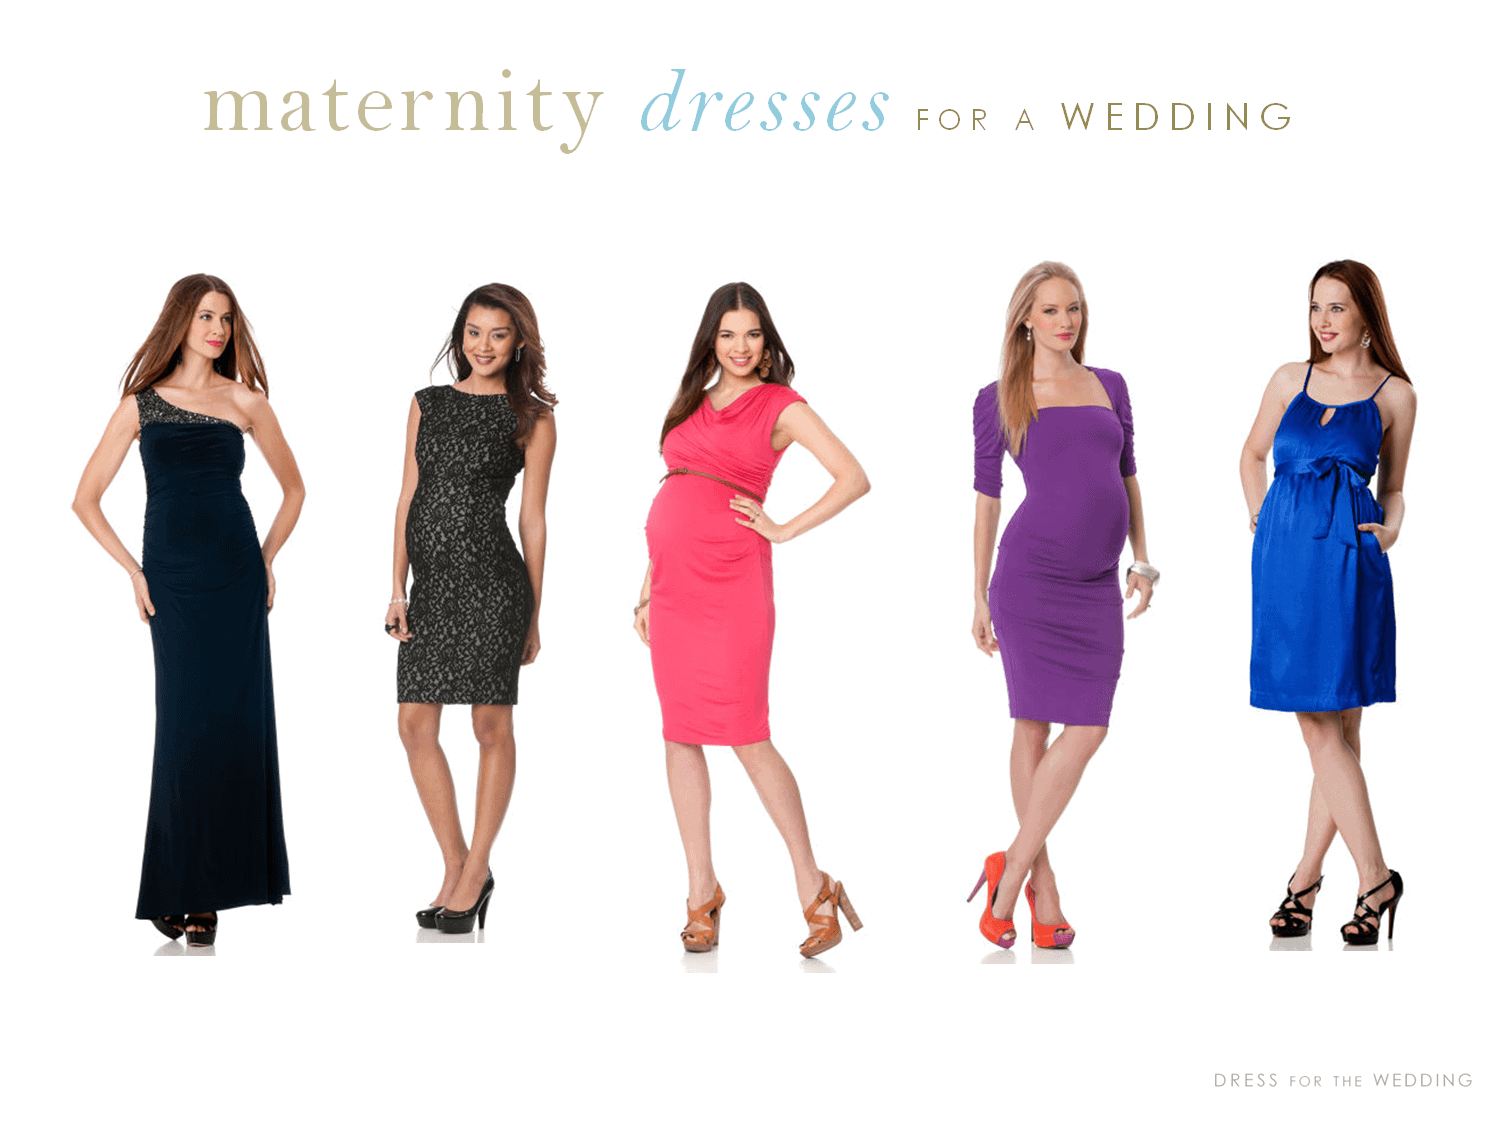 Maternity dresses archives at dress for the wedding wedding guest maternity dresses ombrellifo Choice Image